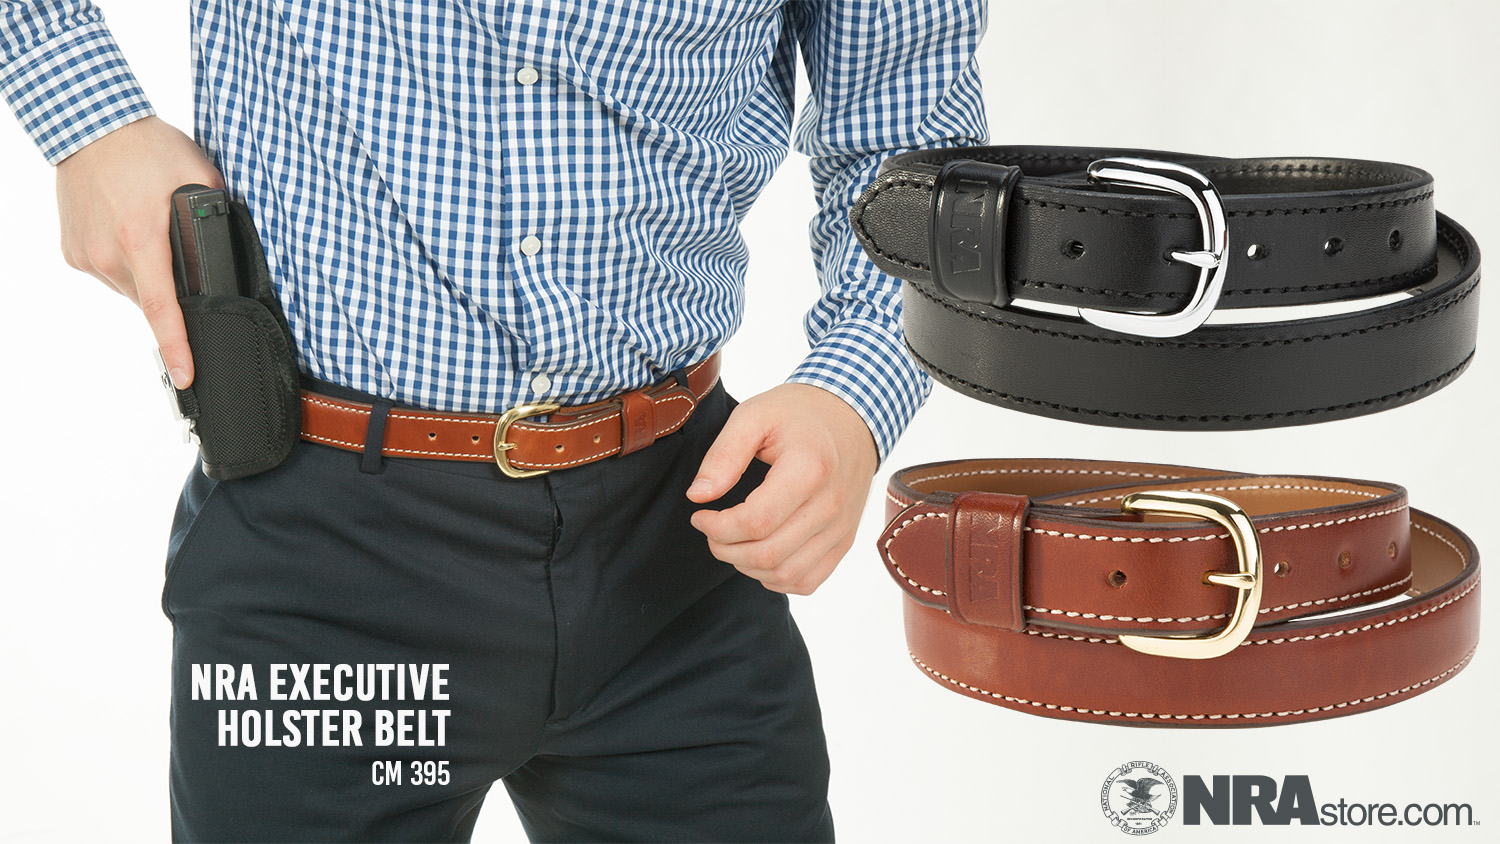 Balance Personal Safety and Formal Attire With the NRA Executive Holster Belt